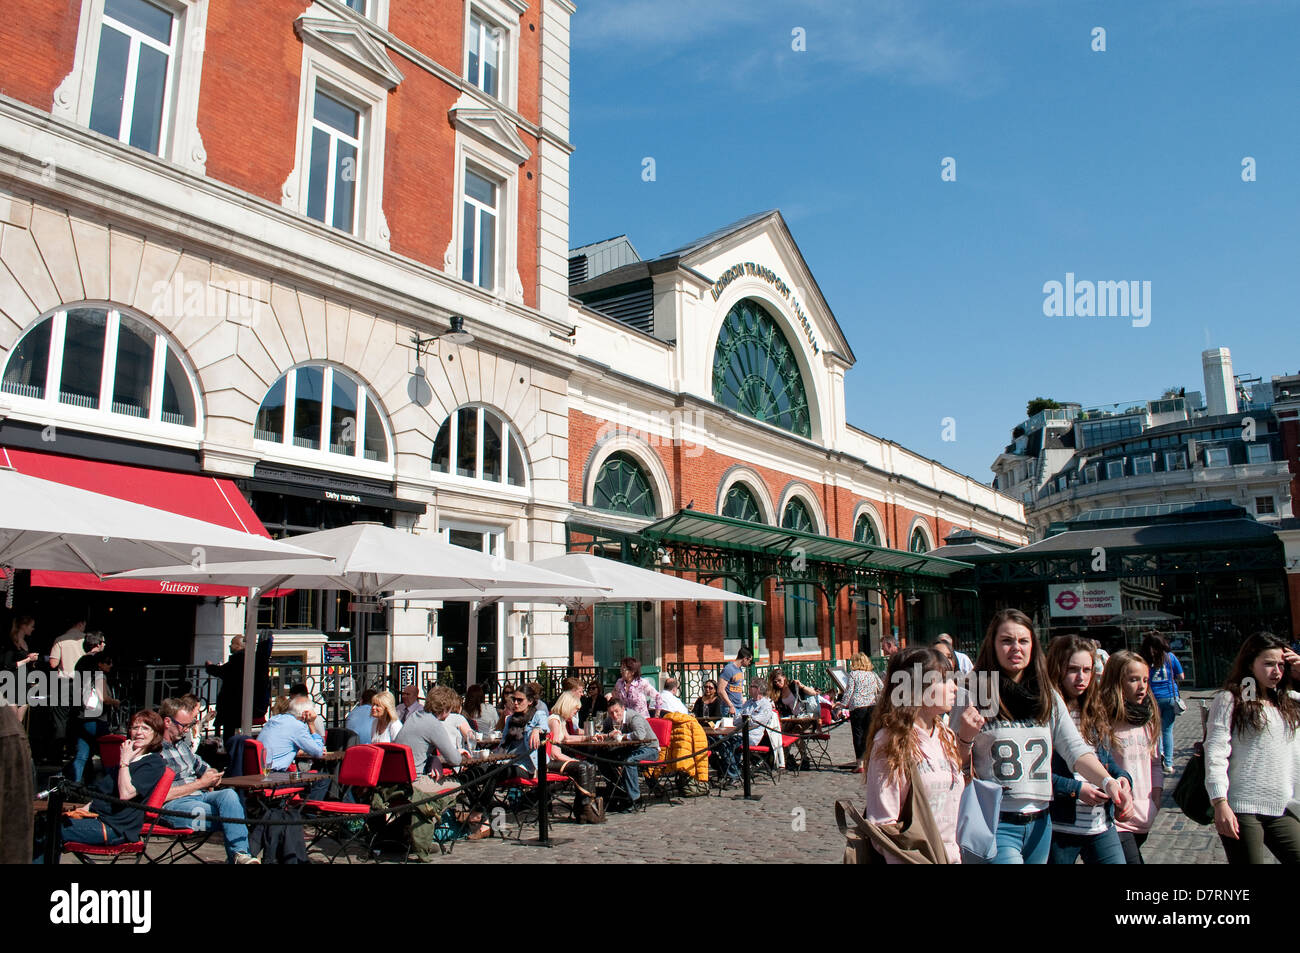 London museum cafe stock photos london museum cafe stock images outdoor cafe covent garden london uk stock image malvernweather Gallery